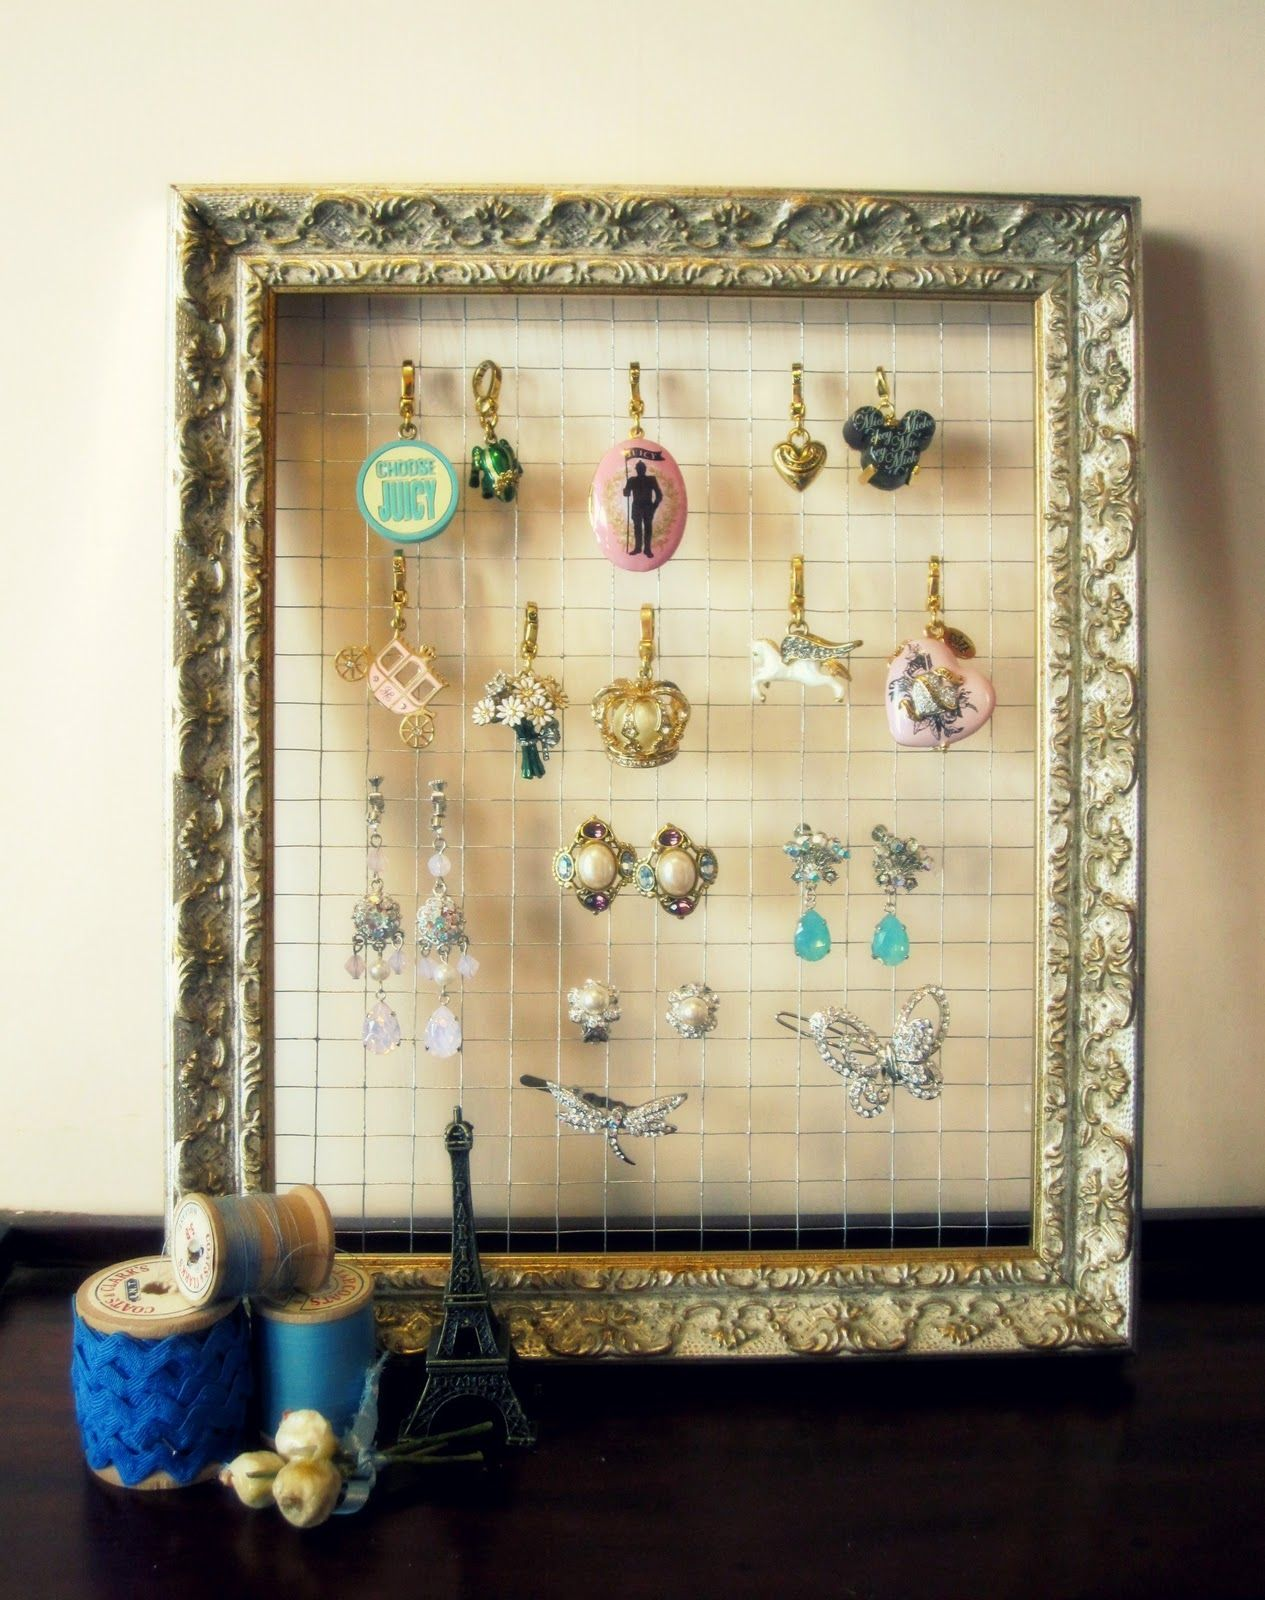 DIY jewelry holder ideas display storage organizer wall frame plates stand easy for necklaces box earrings tree tutorials bracelets necklace ... & 23+ Best DIY Jewelry Holder Ideas to Make Your Jewelry More Tidy ...